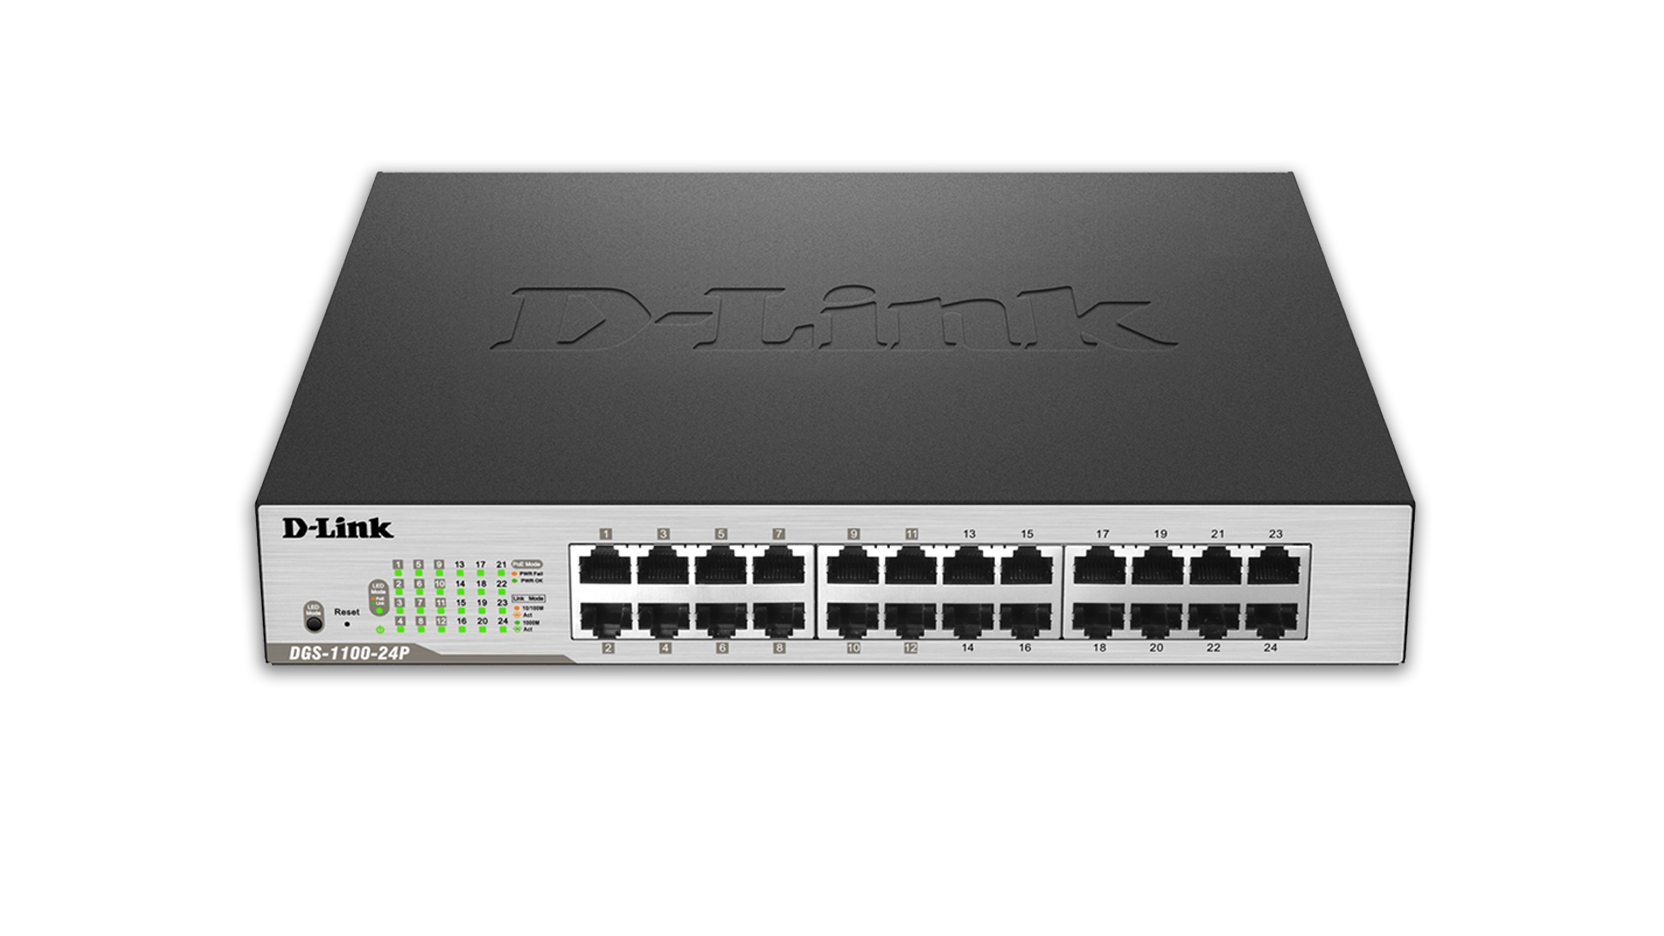 D Link Smart Managed 24 Port Gigabit Poe Switch Dgs 1100 24p Power Over Ethernet Or Which Is A Much Higher Voltage And Not